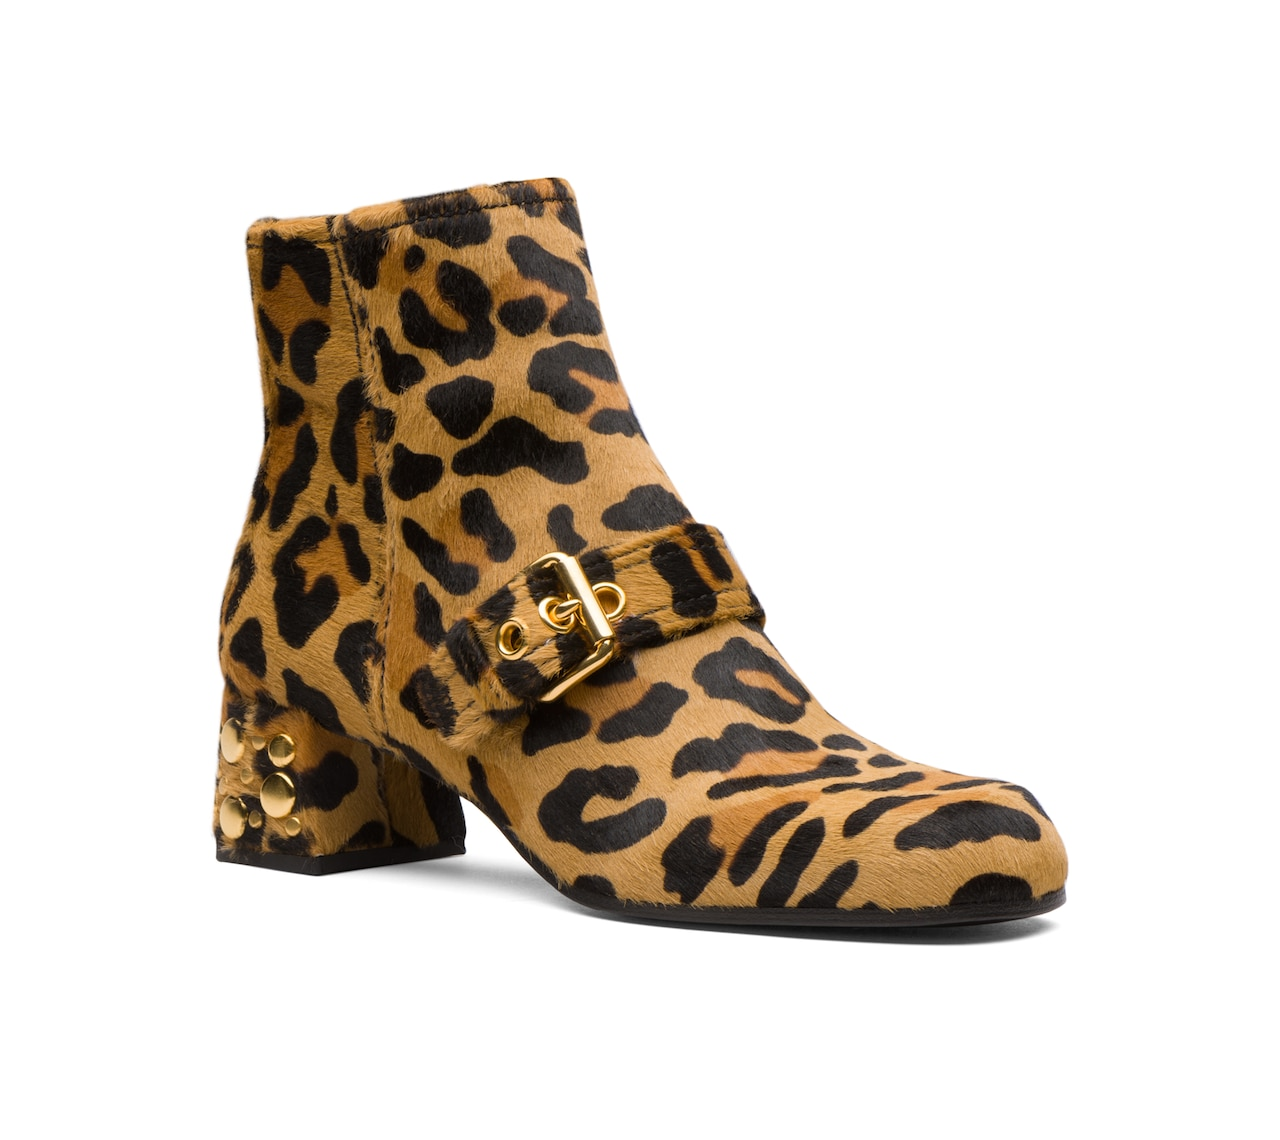 LEOPARD PRINTED PONY HAIR BOOTIES NEUTRAL